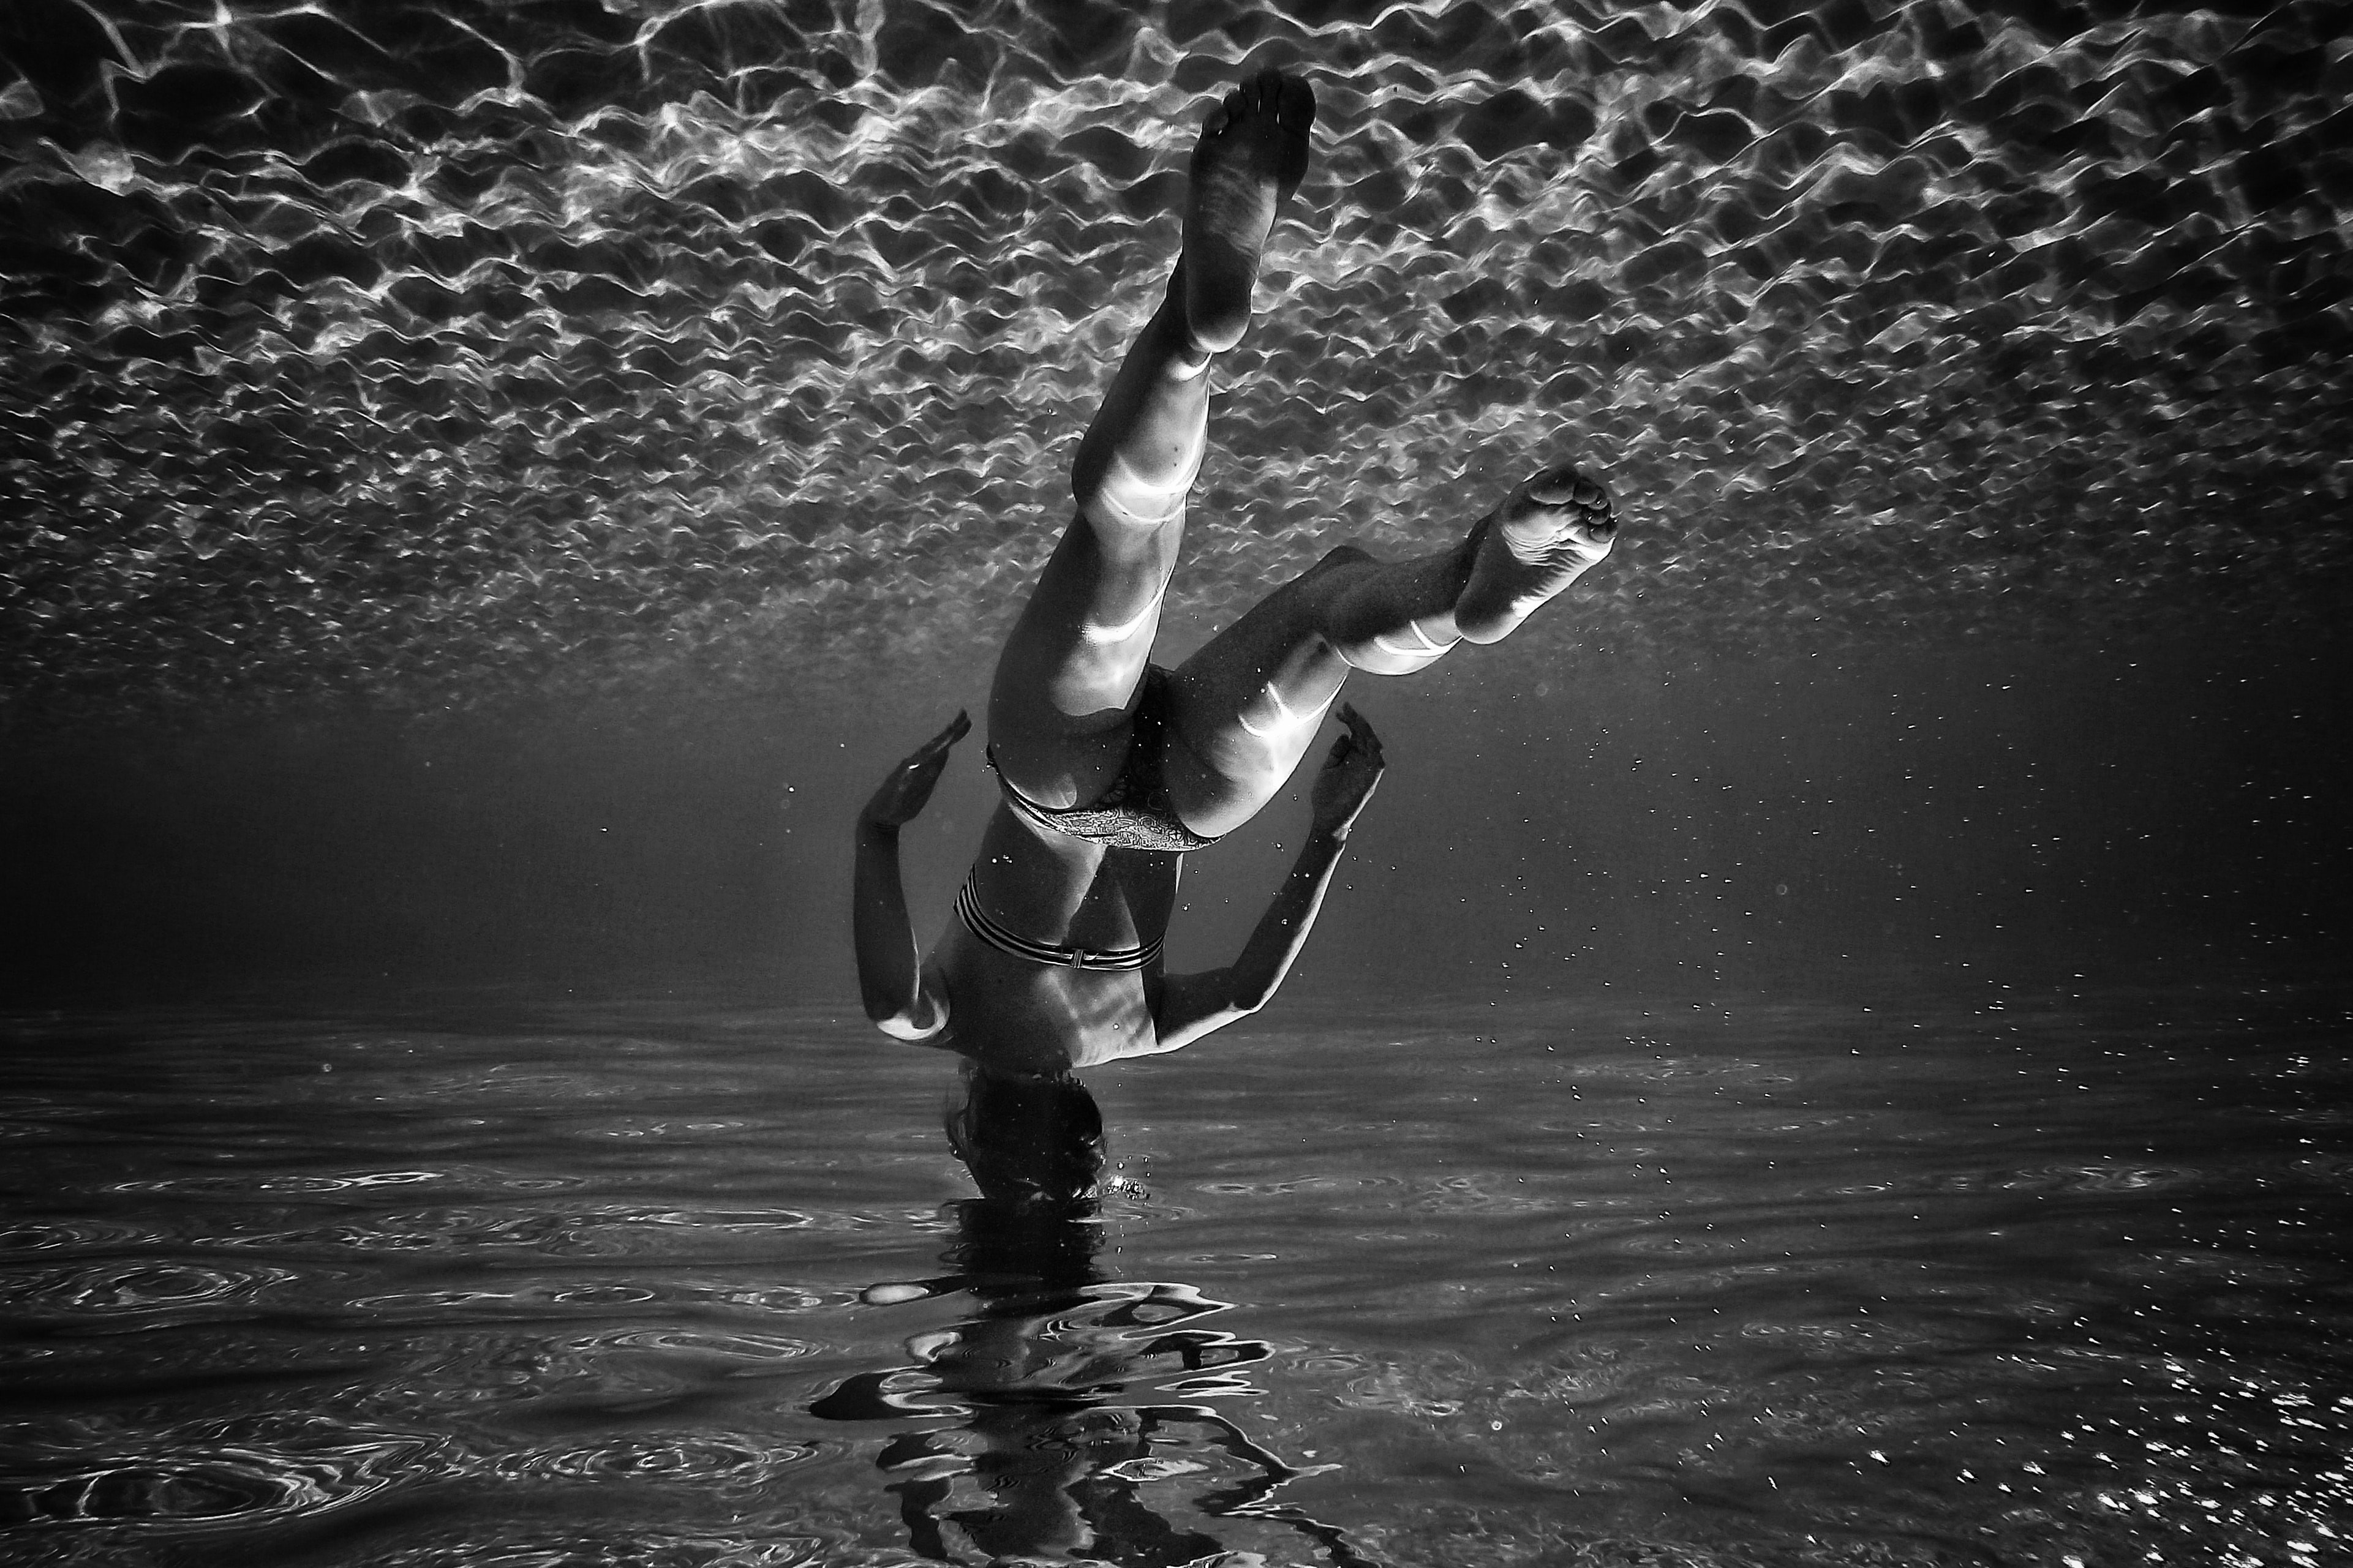 Black and white reflection of woman upside underwater.